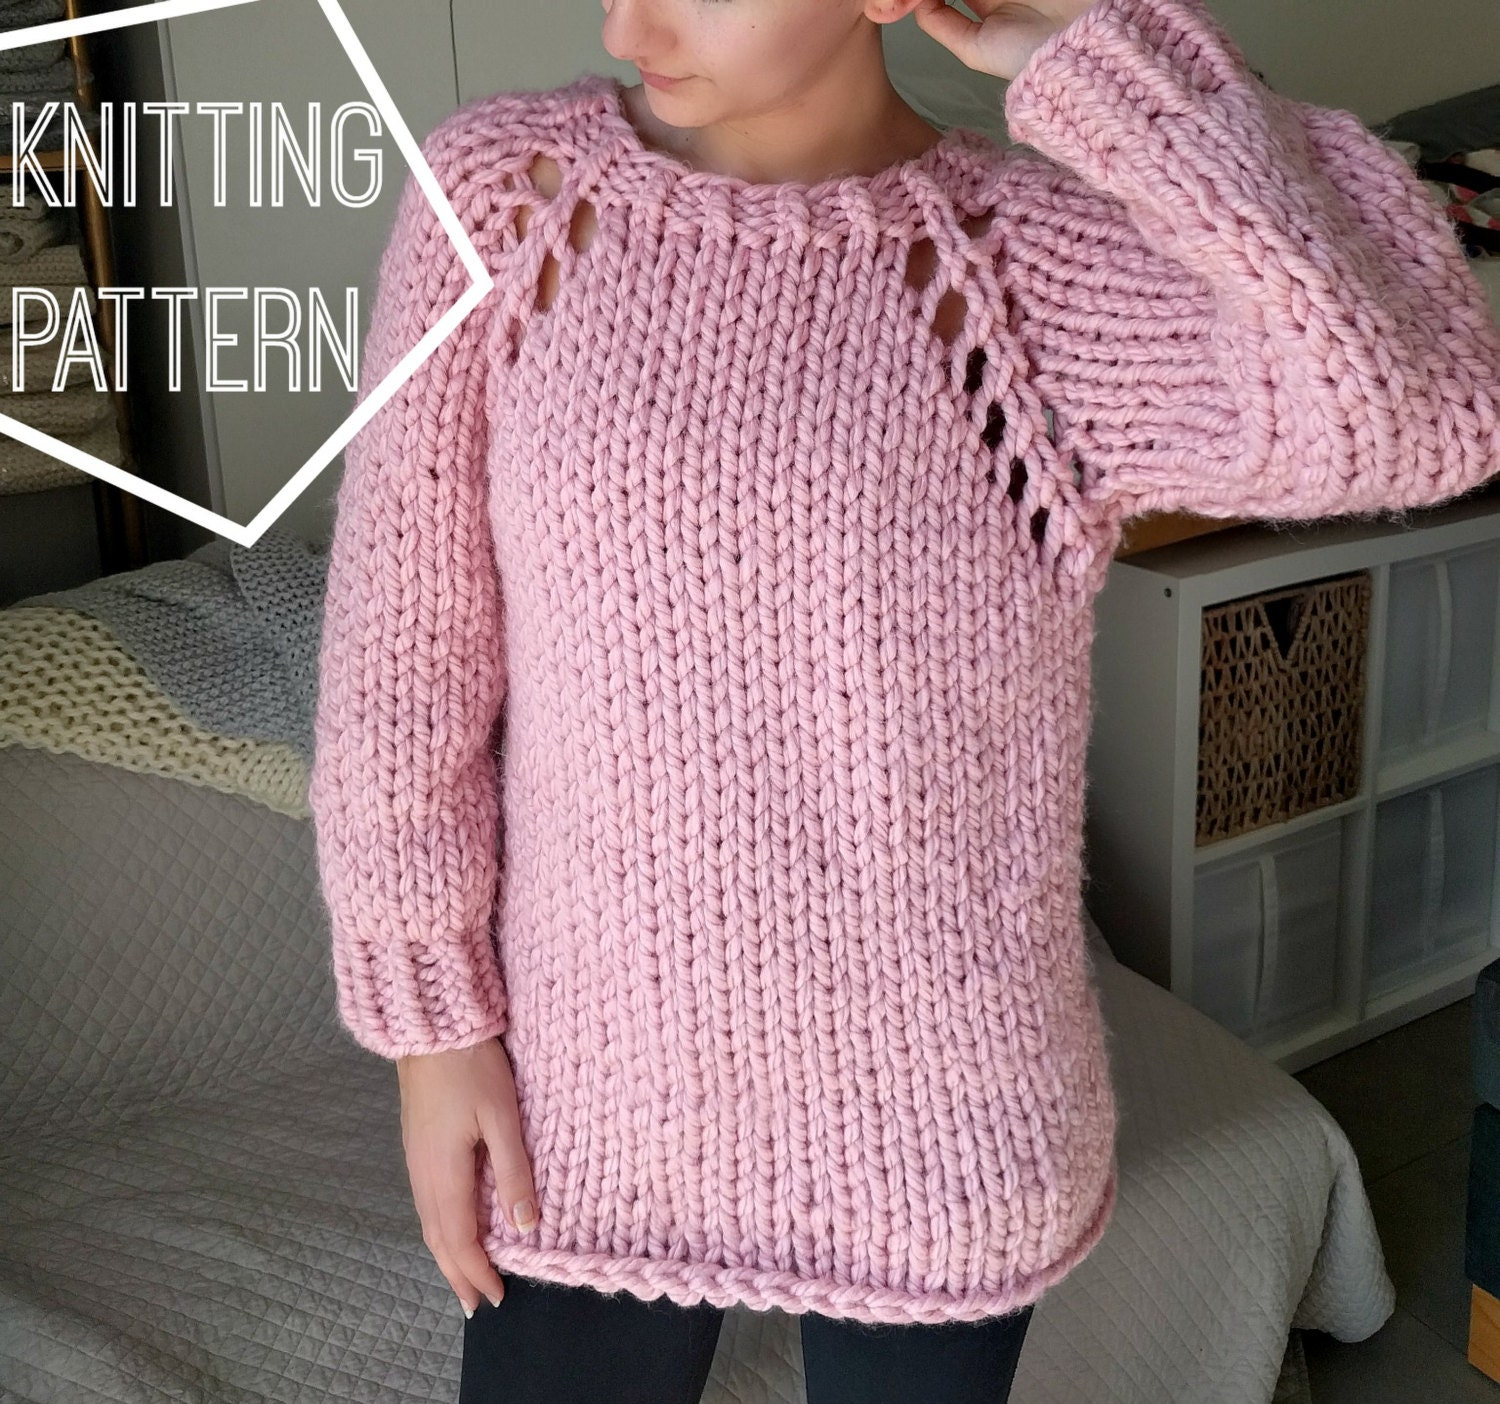 Knitting Pattern Upside Down Sweater : Chunky Knit Sweater Pattern, Top Down Raglan Sweater ...